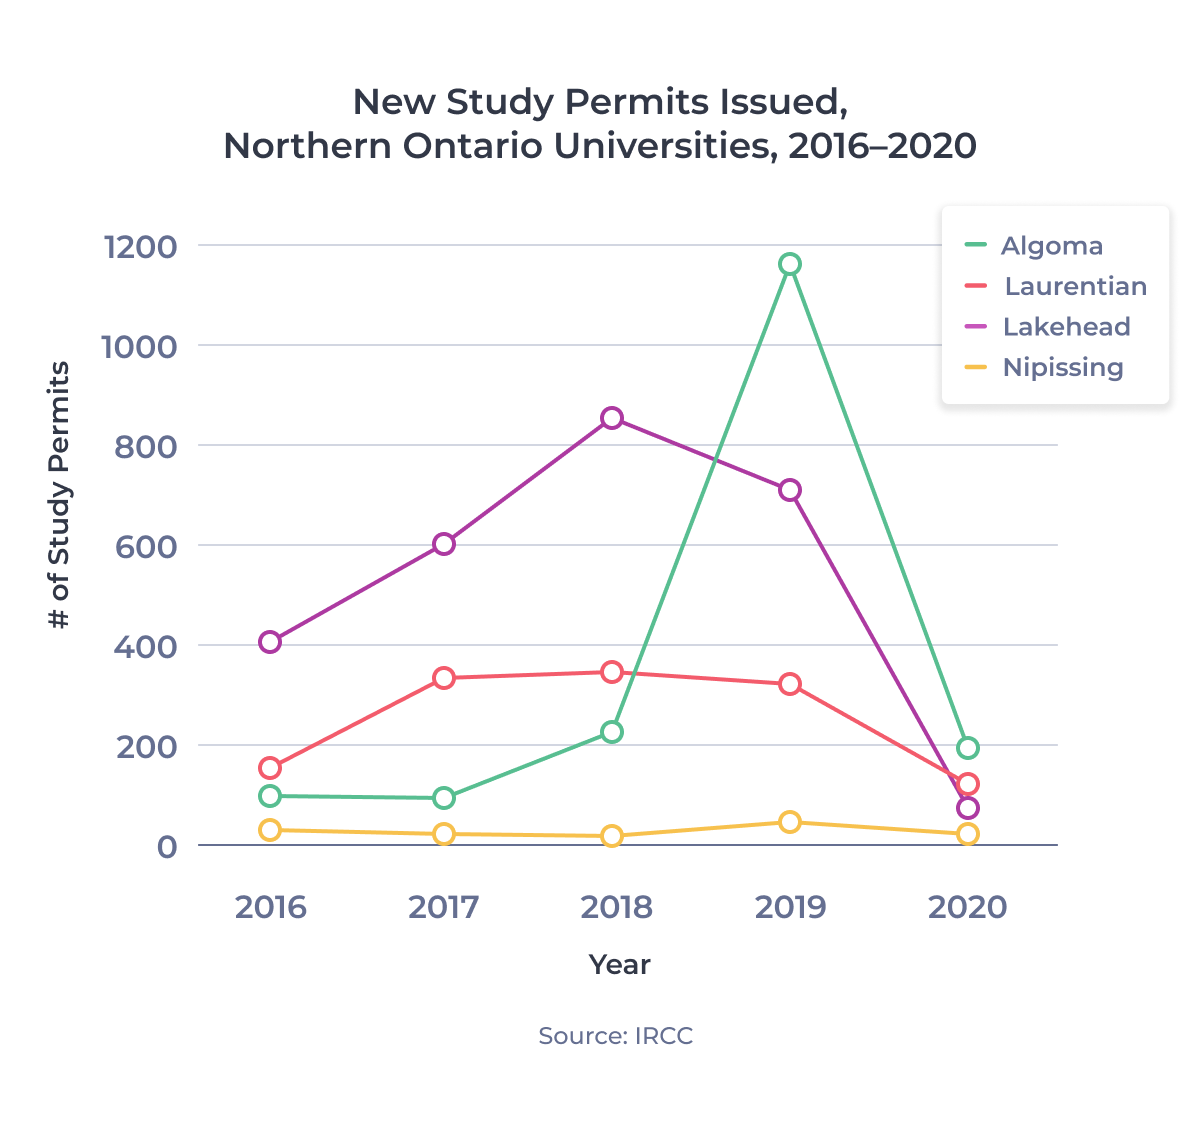 Line chart showing new study permits issued for Northern Ontario universities between 2016 and 2020. Examined in detail below.